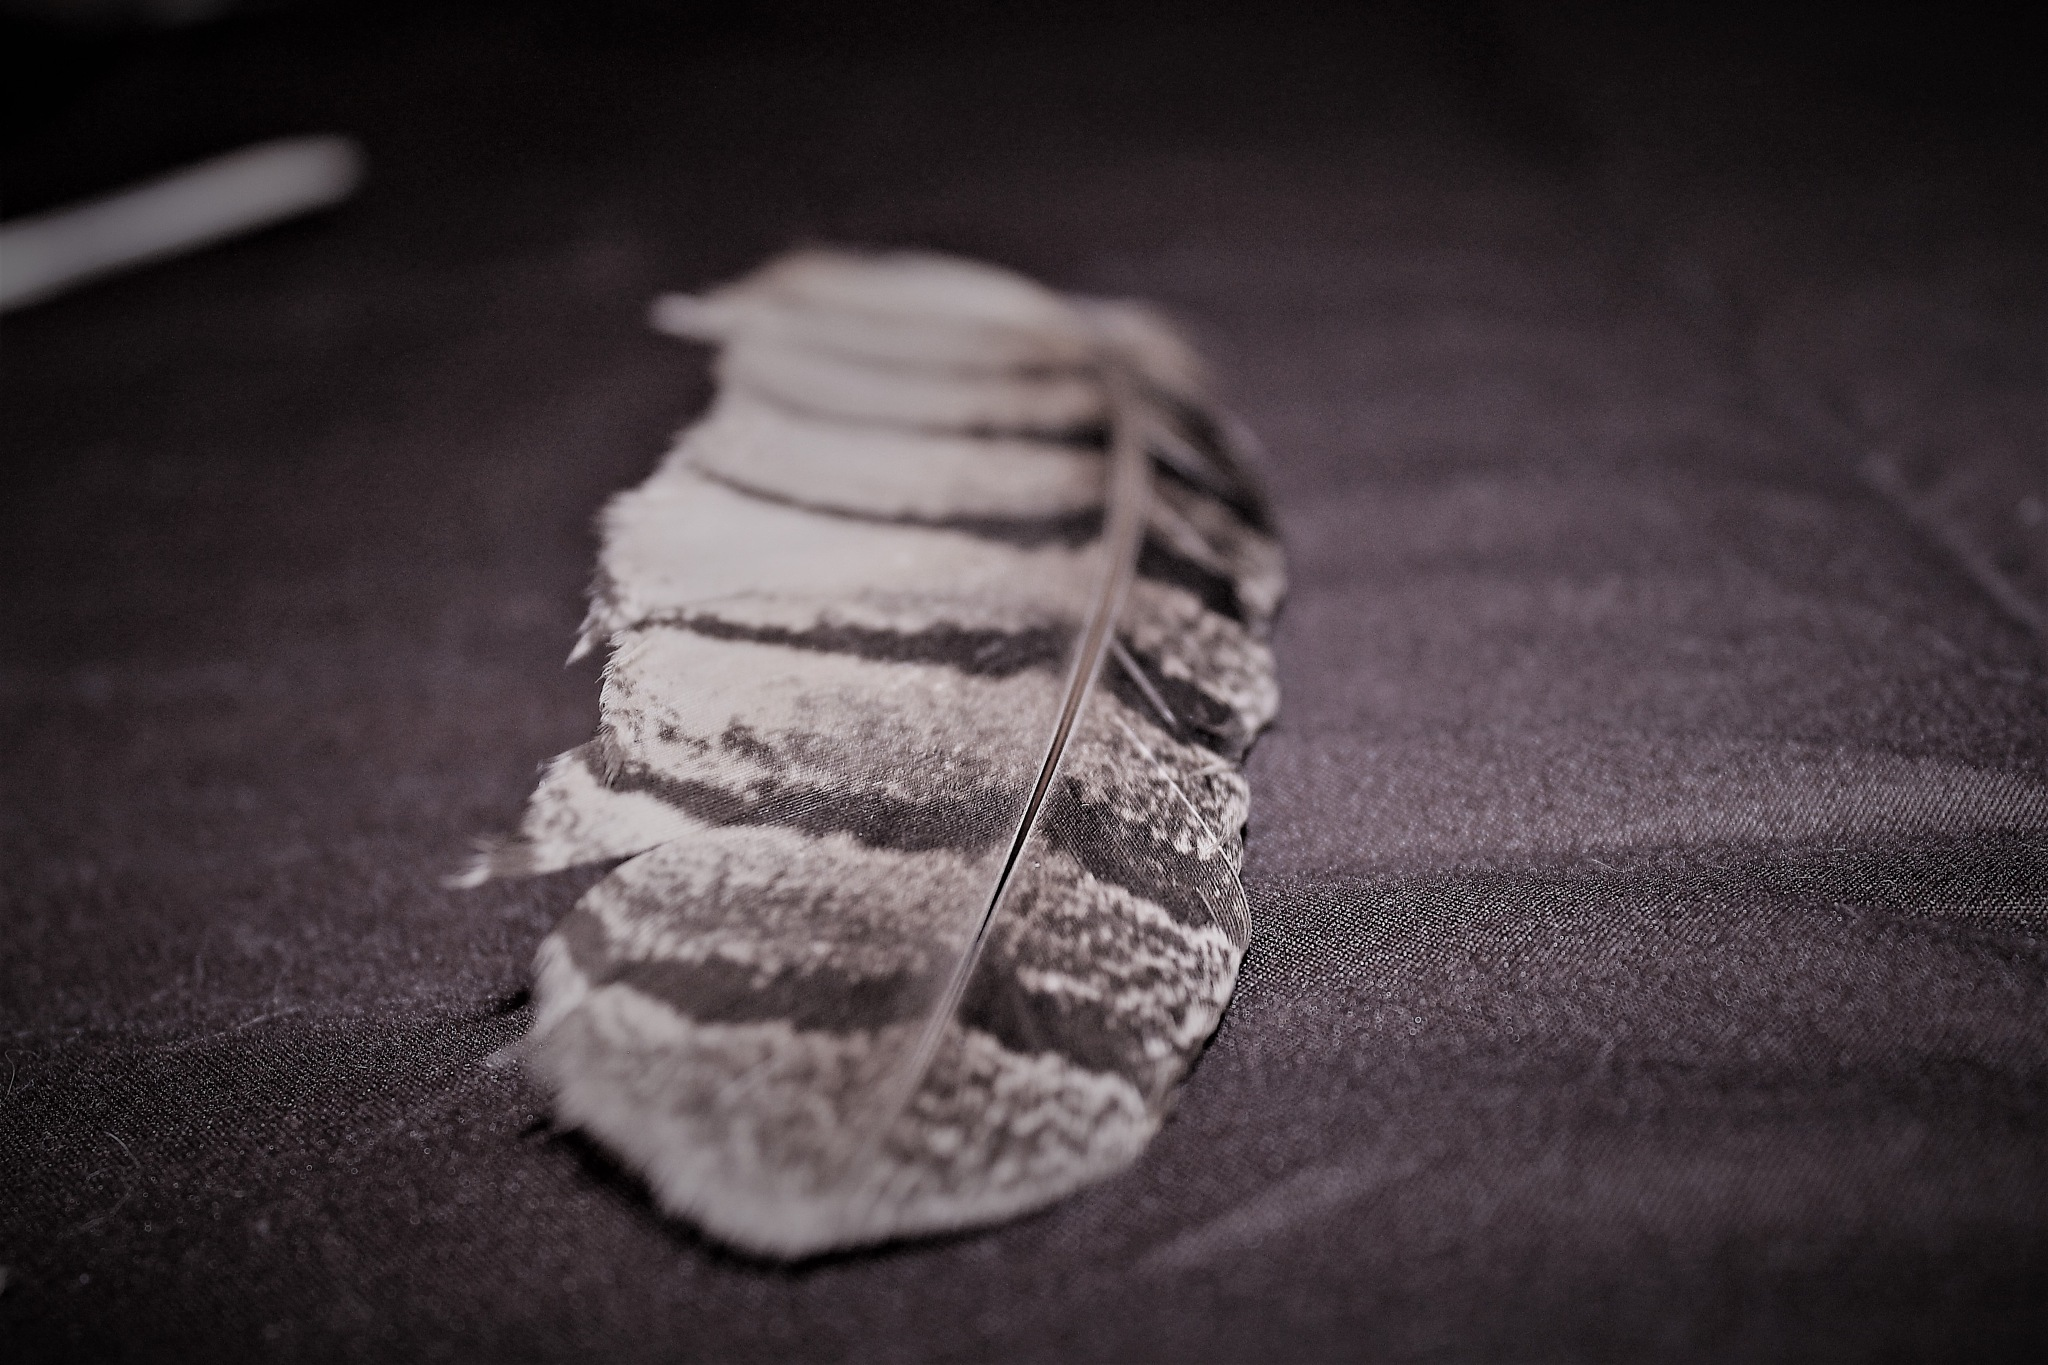 Feather by craig.turner.756